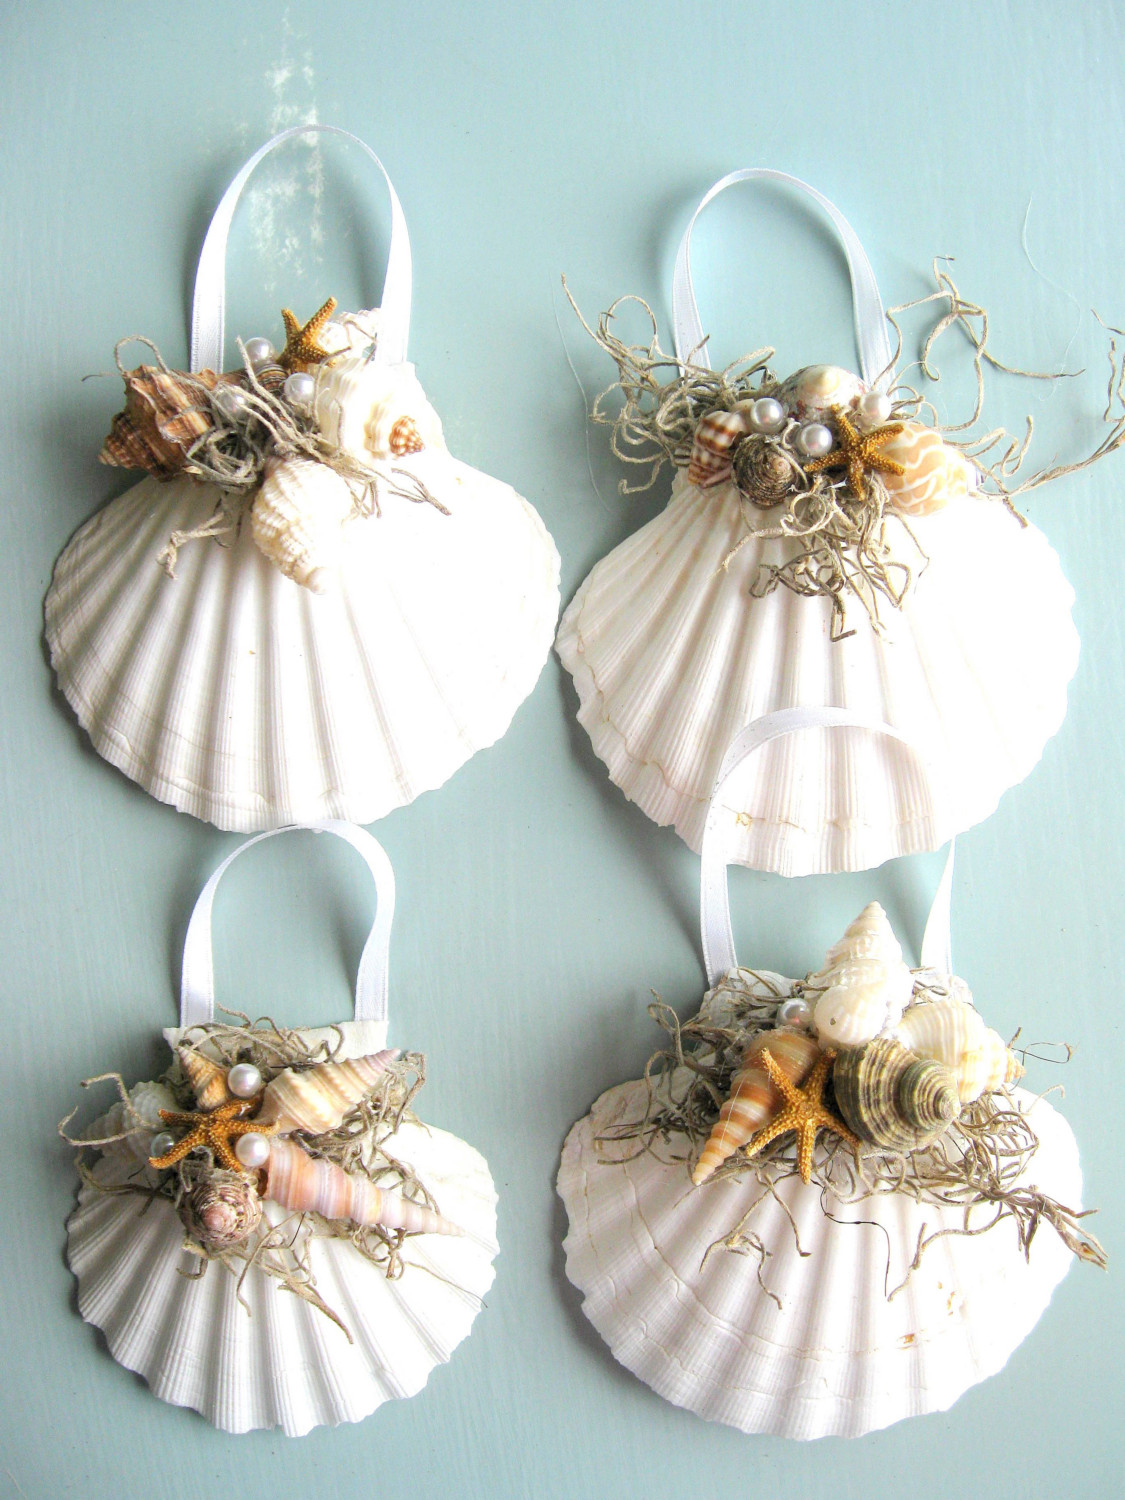 Christmas seashell ornaments interior designing ideas for Tiny shells for crafts